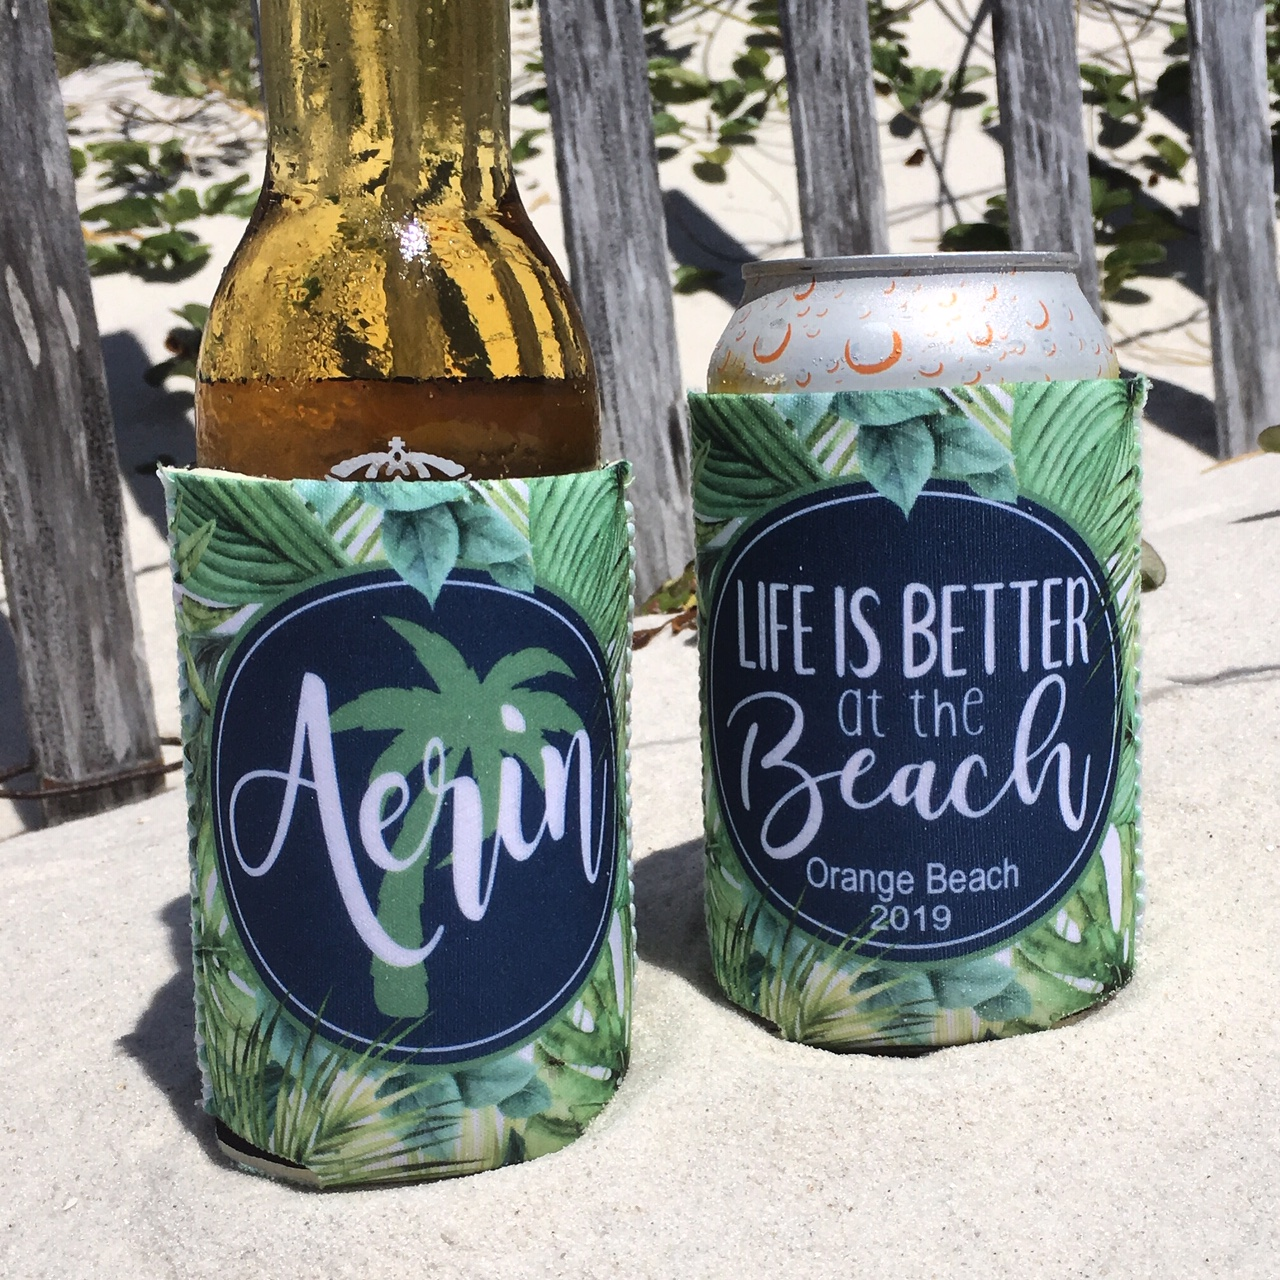 Beach Vacation Koozies or coolies - Life is Better at the Beach